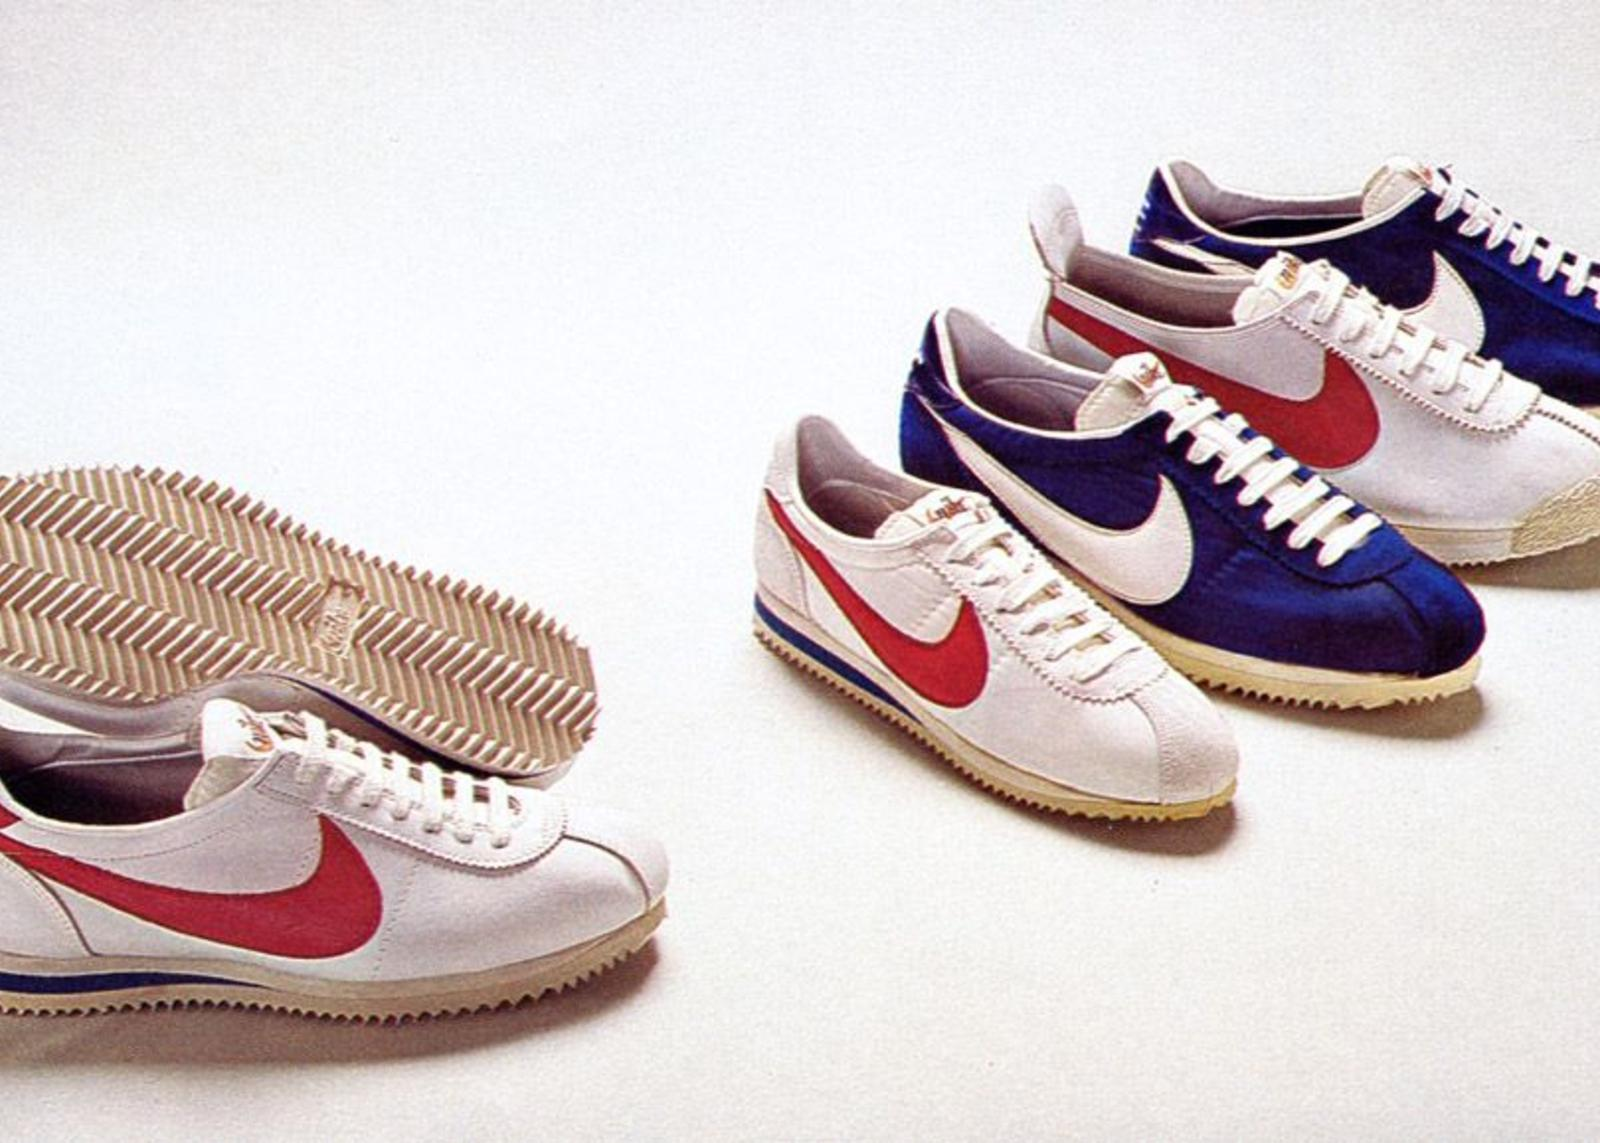 the best attitude 4e183 5af11 Bill Bowerman and the Birth of Visible Innovation - Nike News